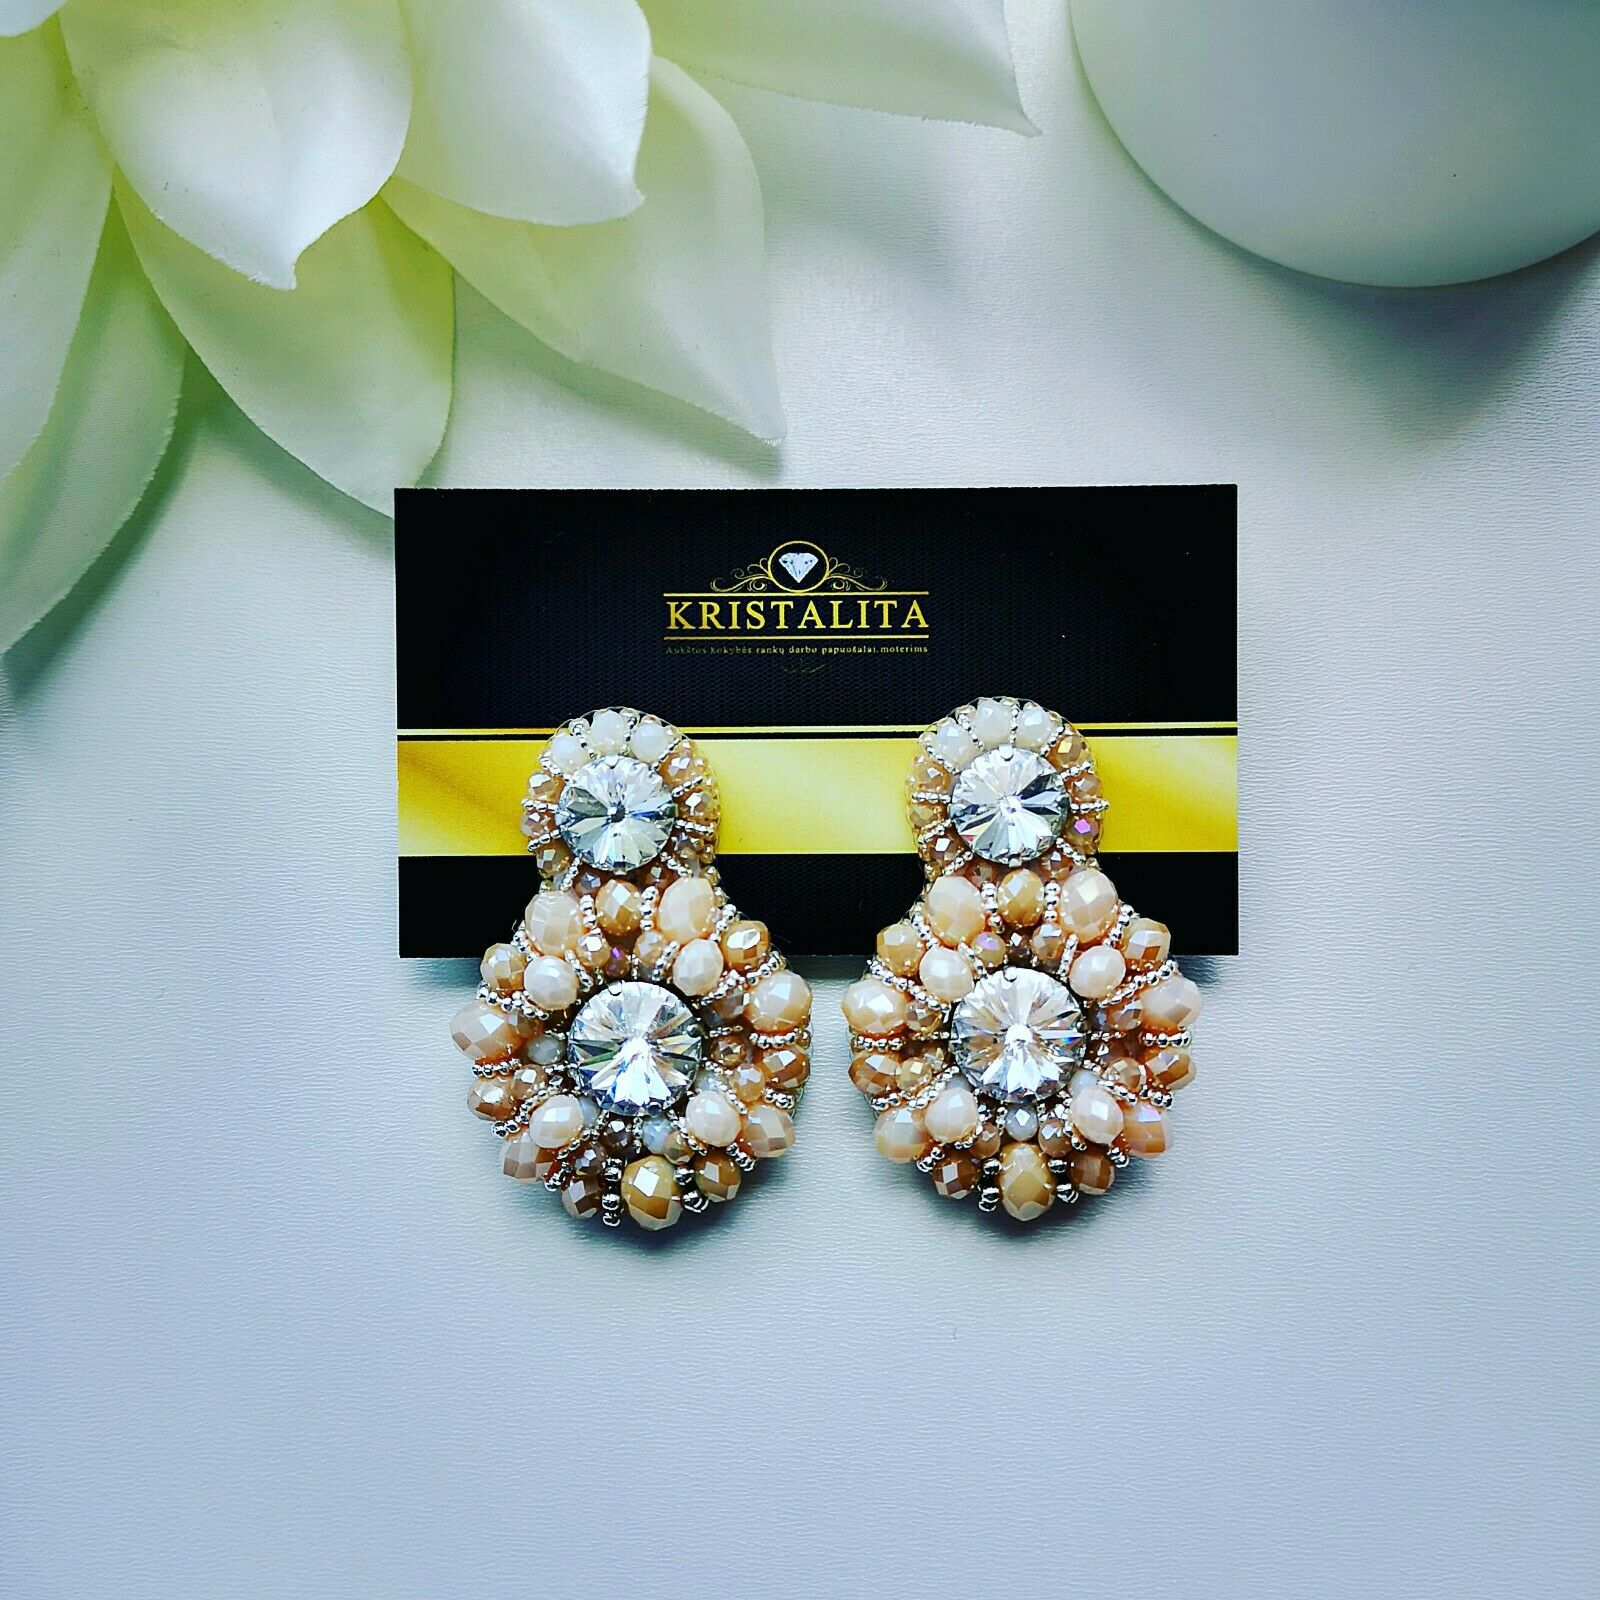 Handmade earrings with Swarovski crystal